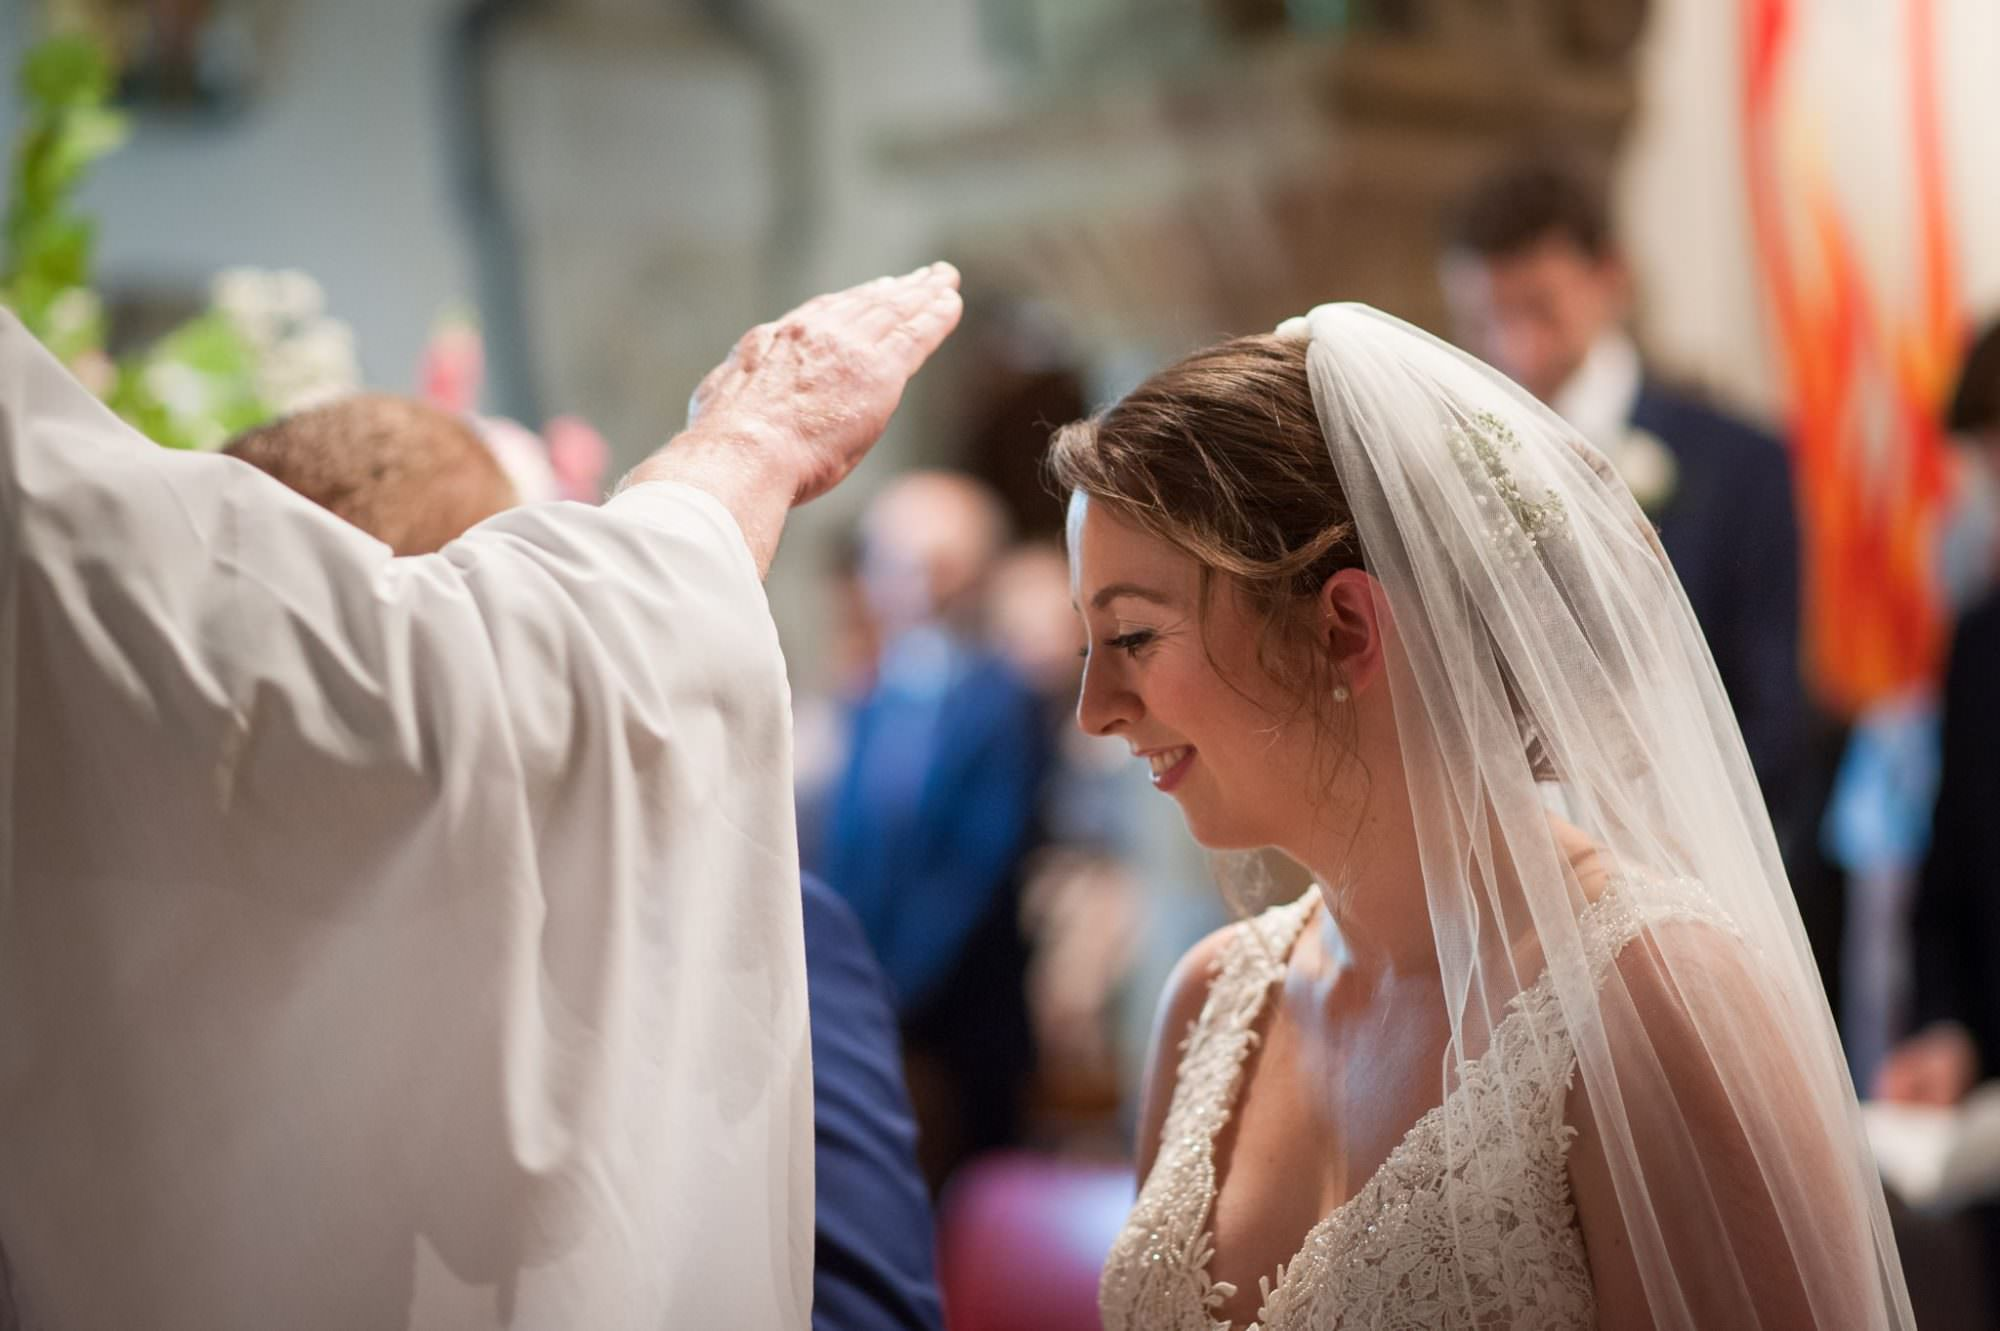 Wedding prayer at Canford magna church wedding